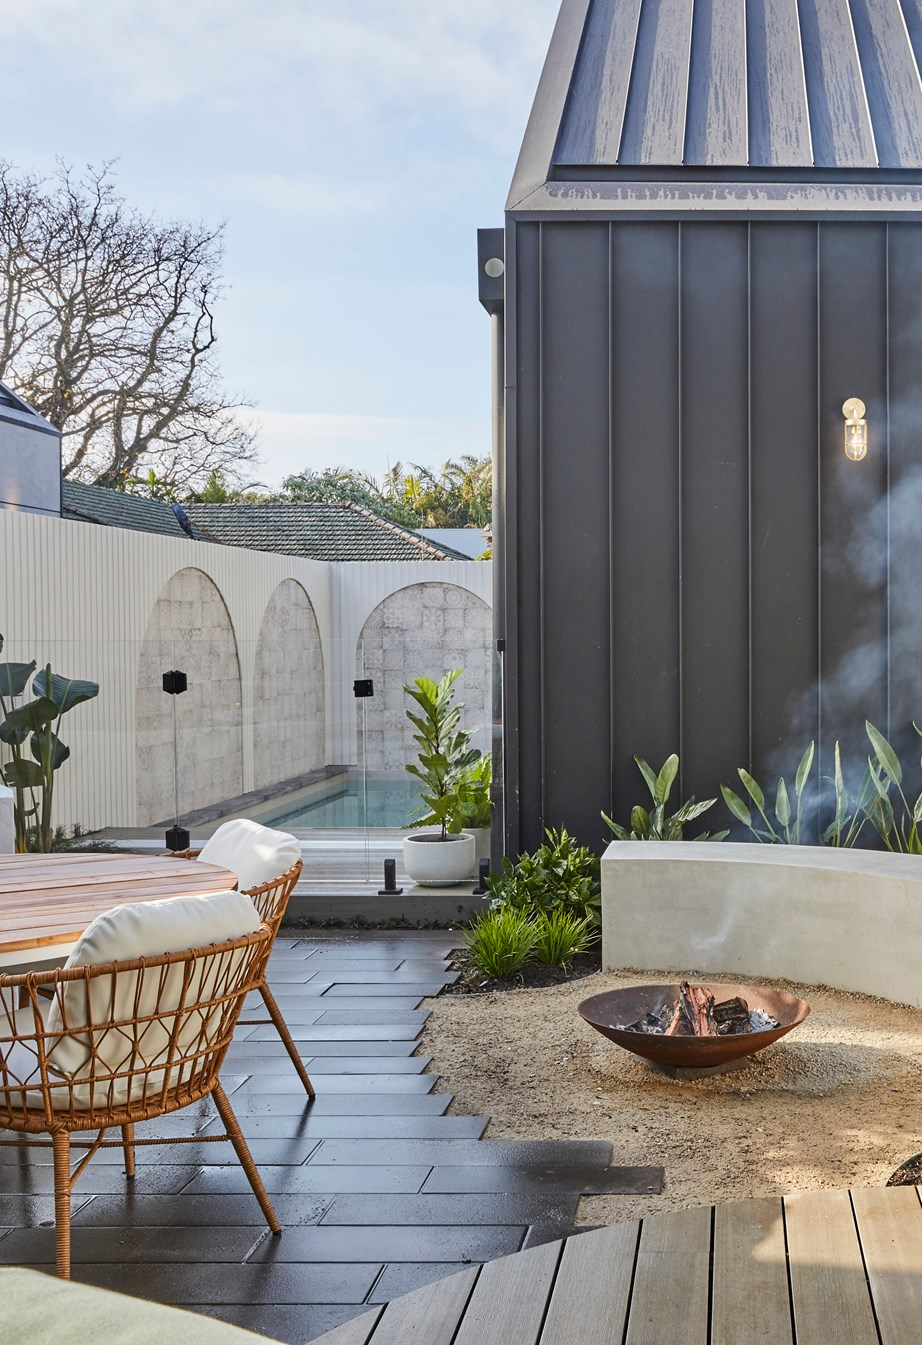 **Week 12, Backyard and Pool** Luke and Jasmin's backyard is a dreamy coastal-inspired escape that embraces subtle curves and outdoor entertaining.